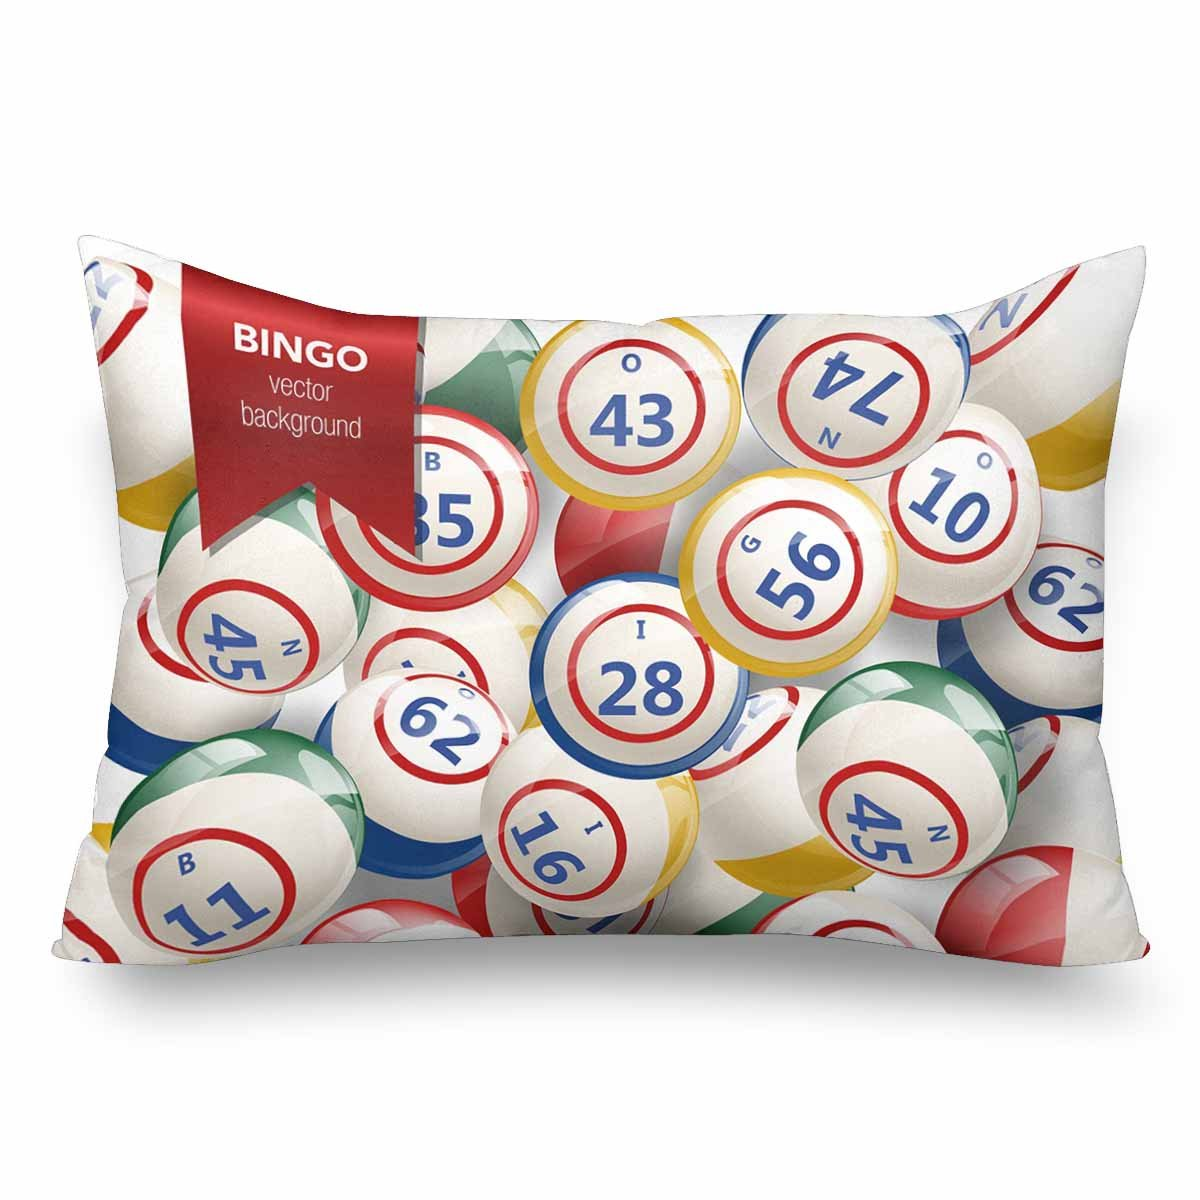 InterestPrint Bingo Lottery Numbers Balls Pillow Cases Pillowcase Standard Size 20x30, Rectangle Pillow Covers Protector for Home Couch Sofa Bedding Decorative